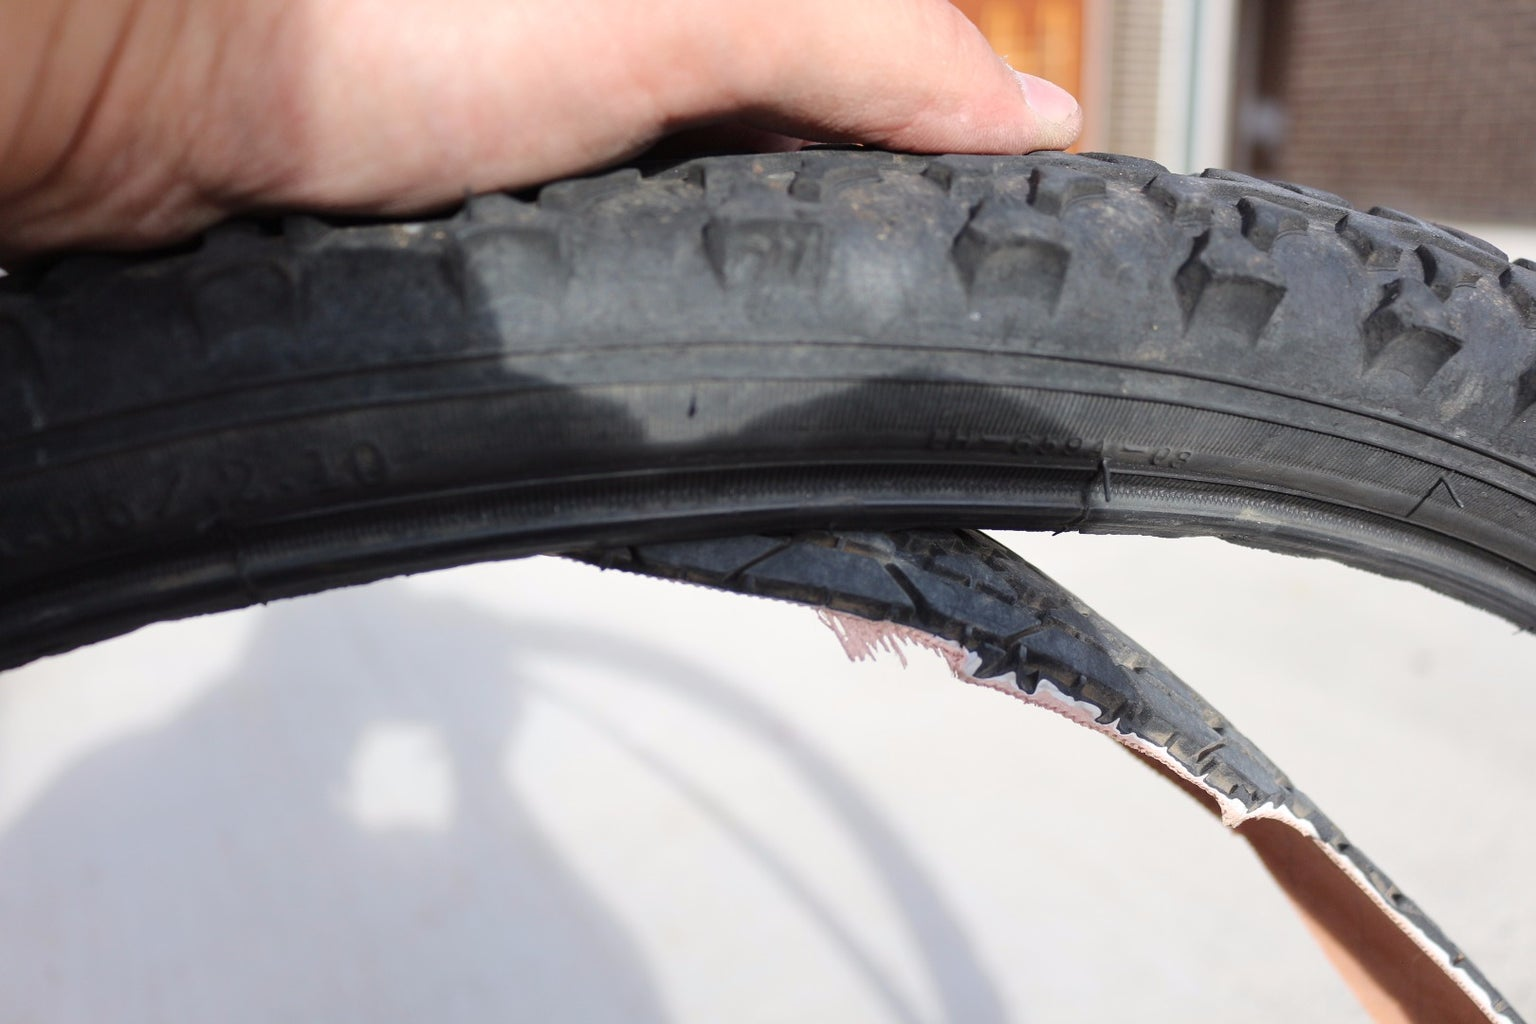 Inserting the Cut Tyre